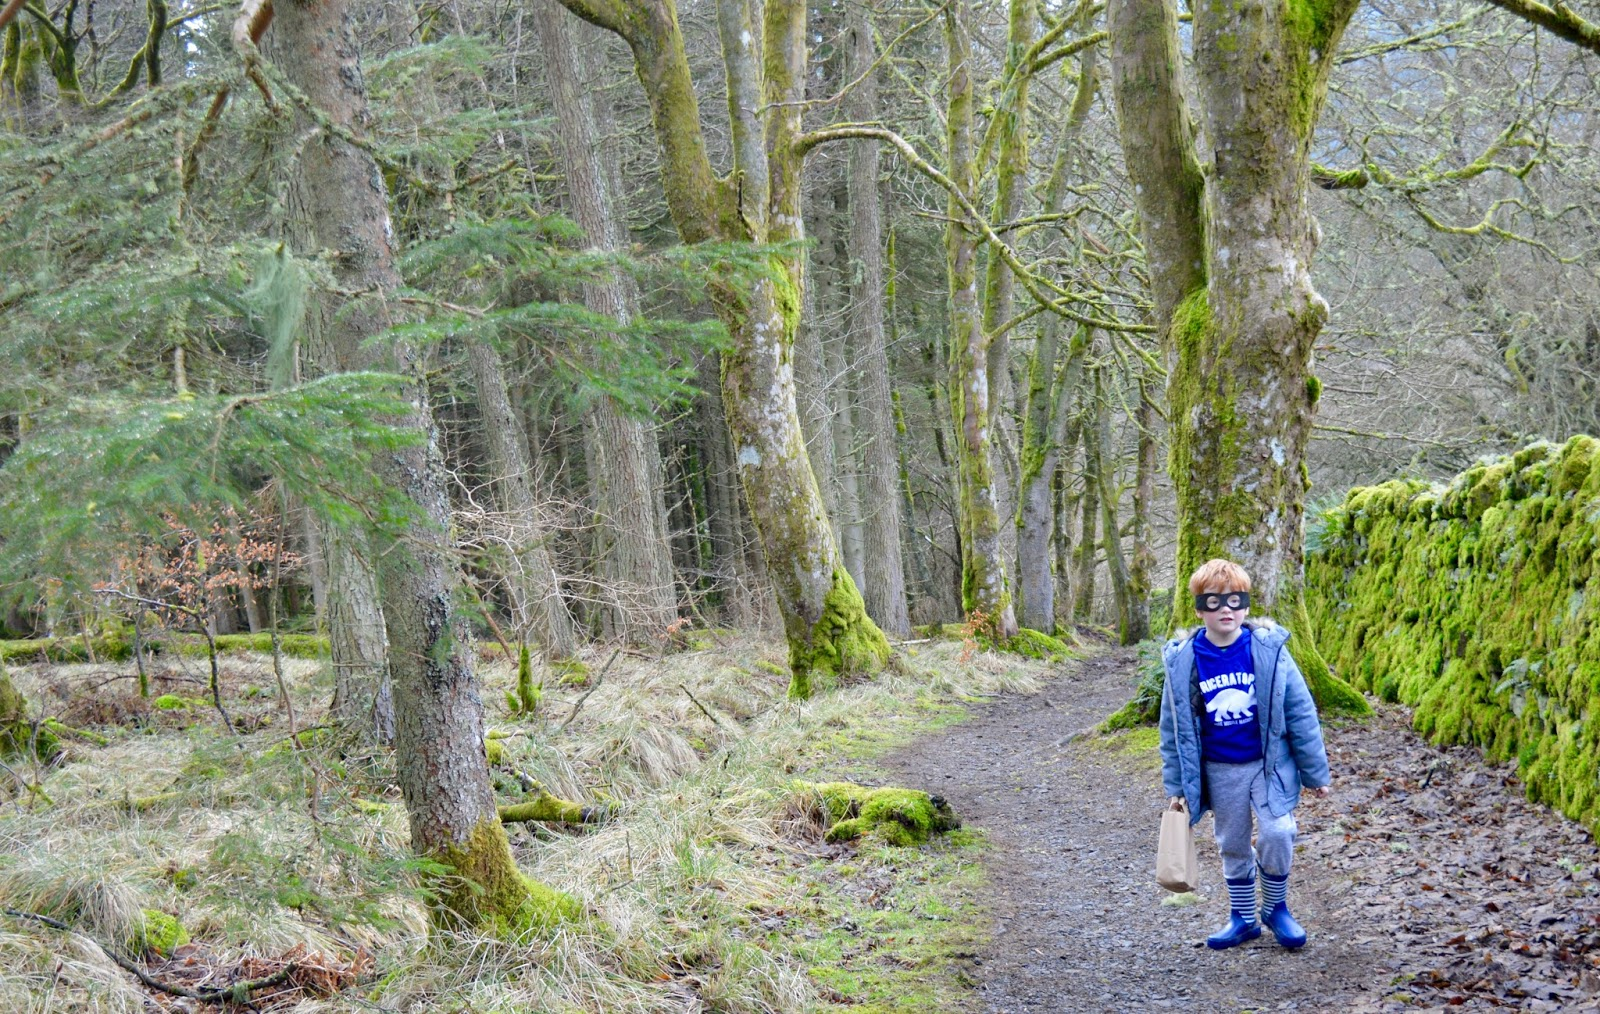 10 of the best family walks in North East England with a cafe and play park nearby